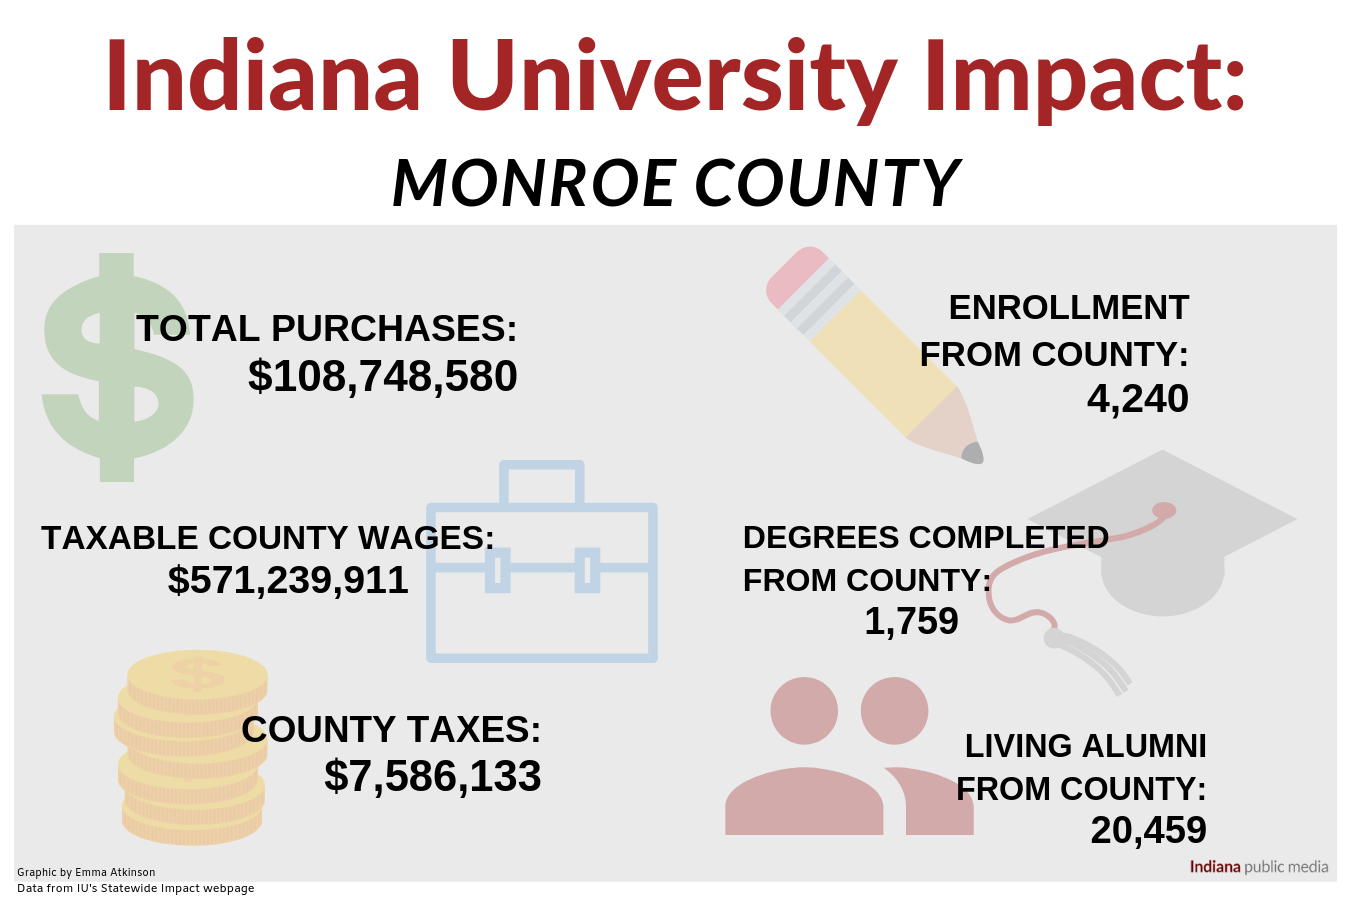 IU Impact data from the Statewide Impact webpage.